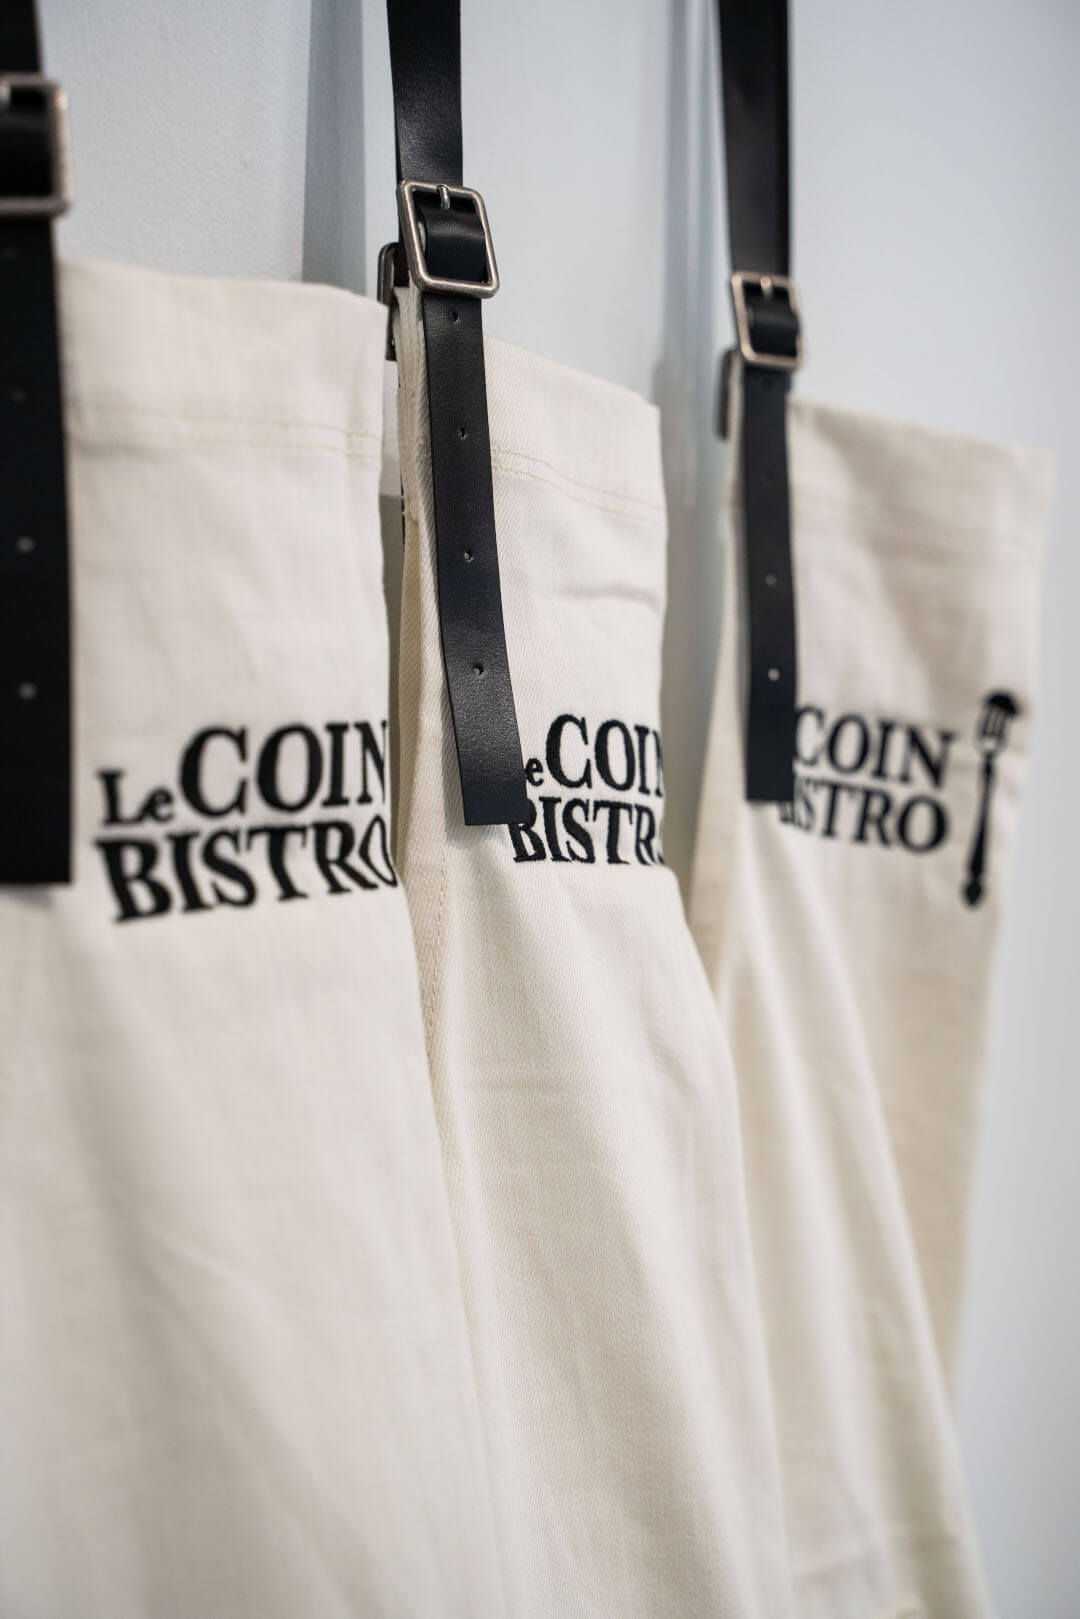 Le Coin Bistro aprons hanging on wall